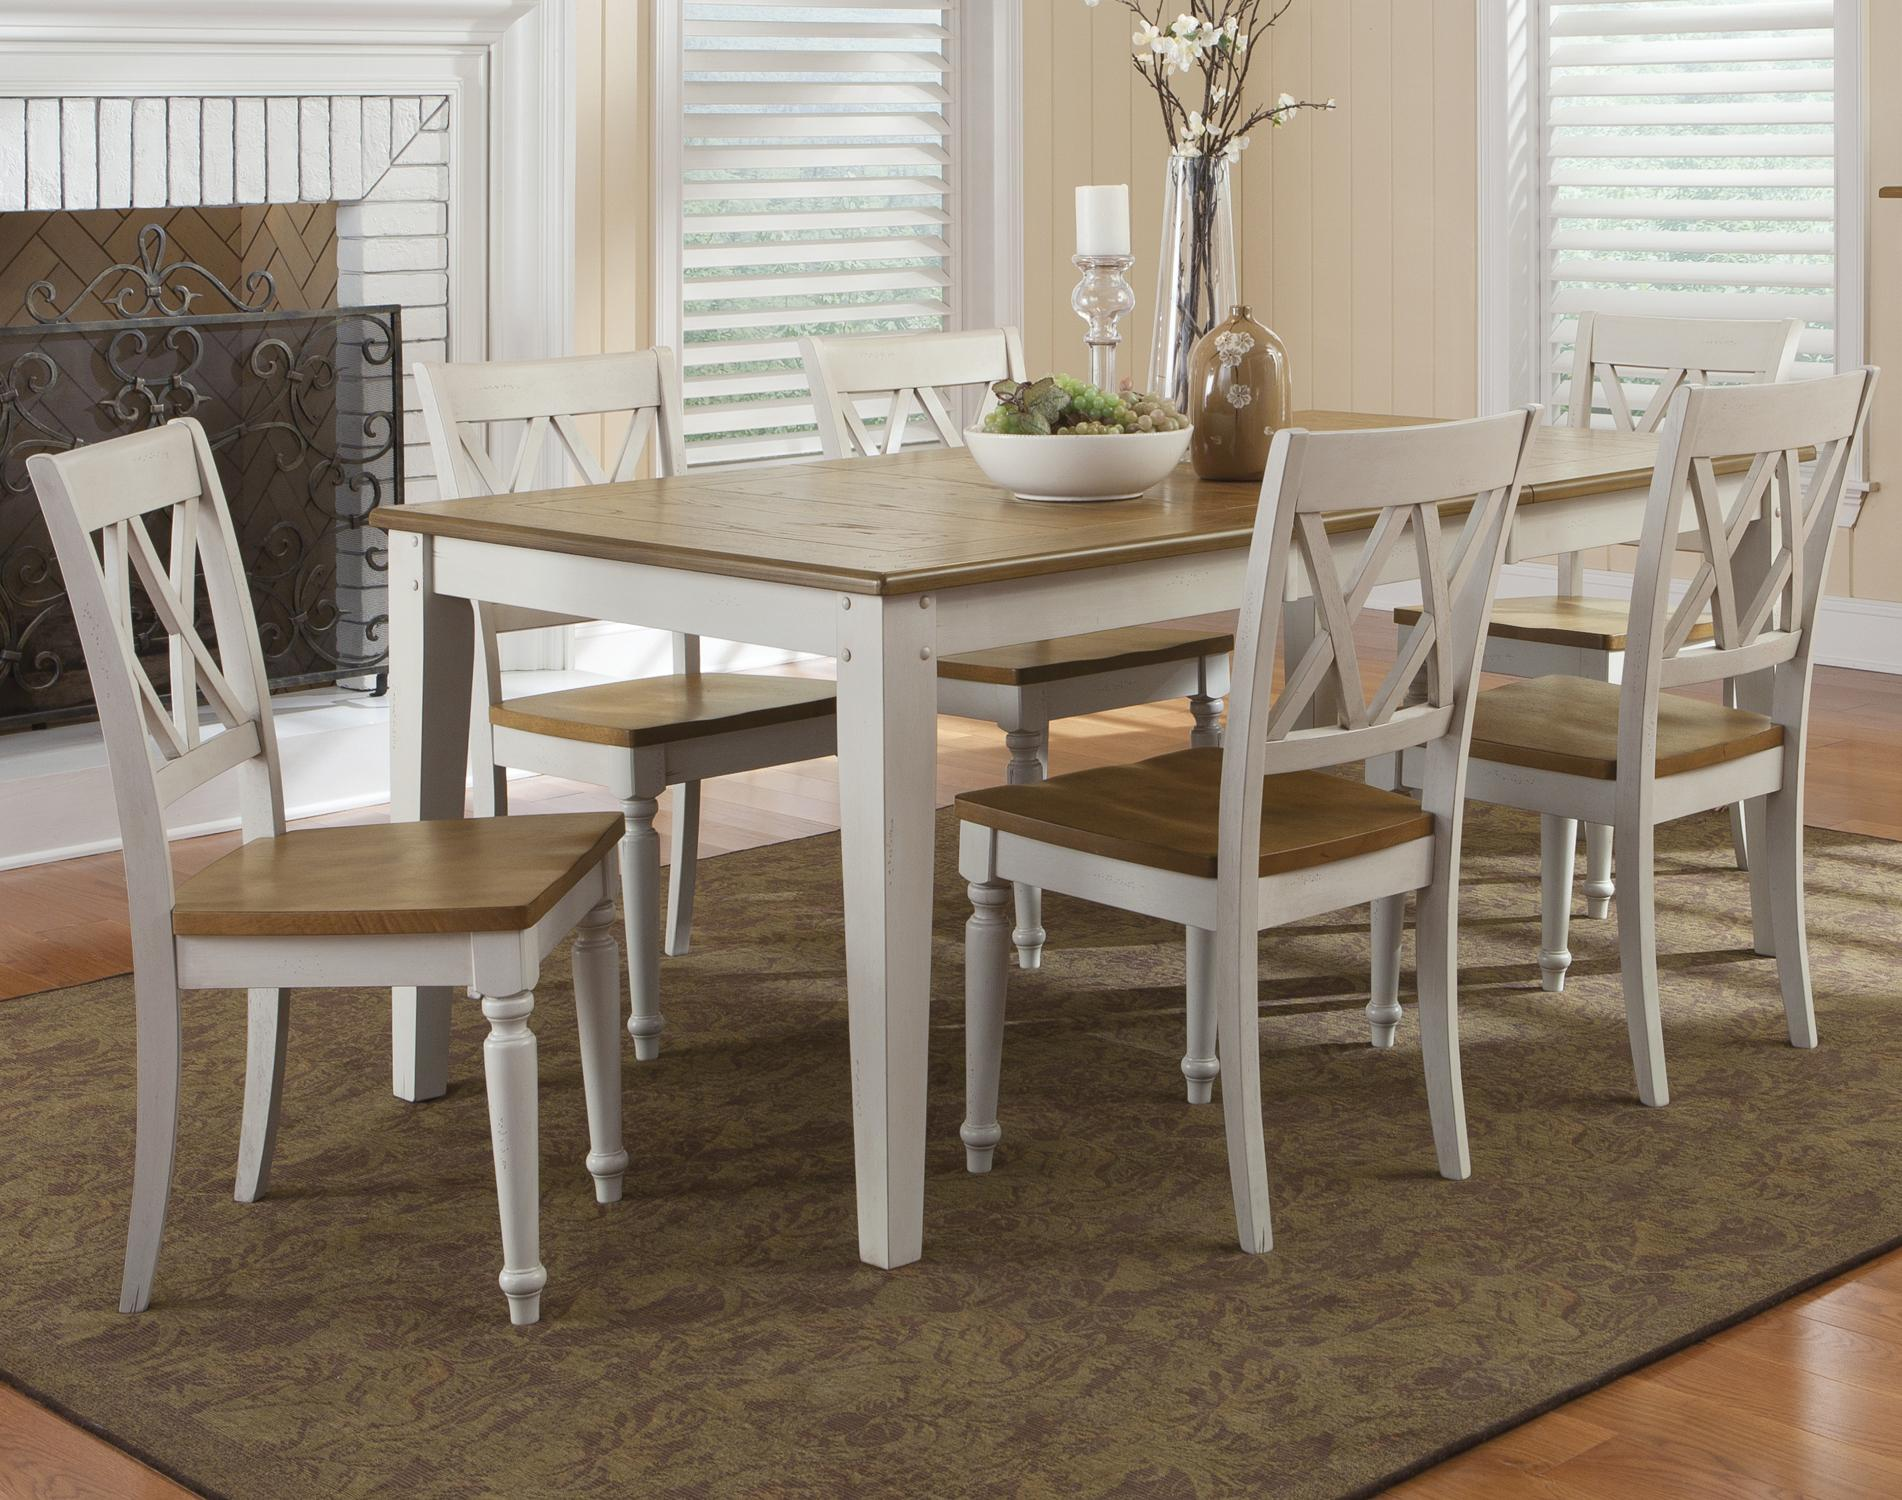 7 Piece Rectangular Table and Chairs Set